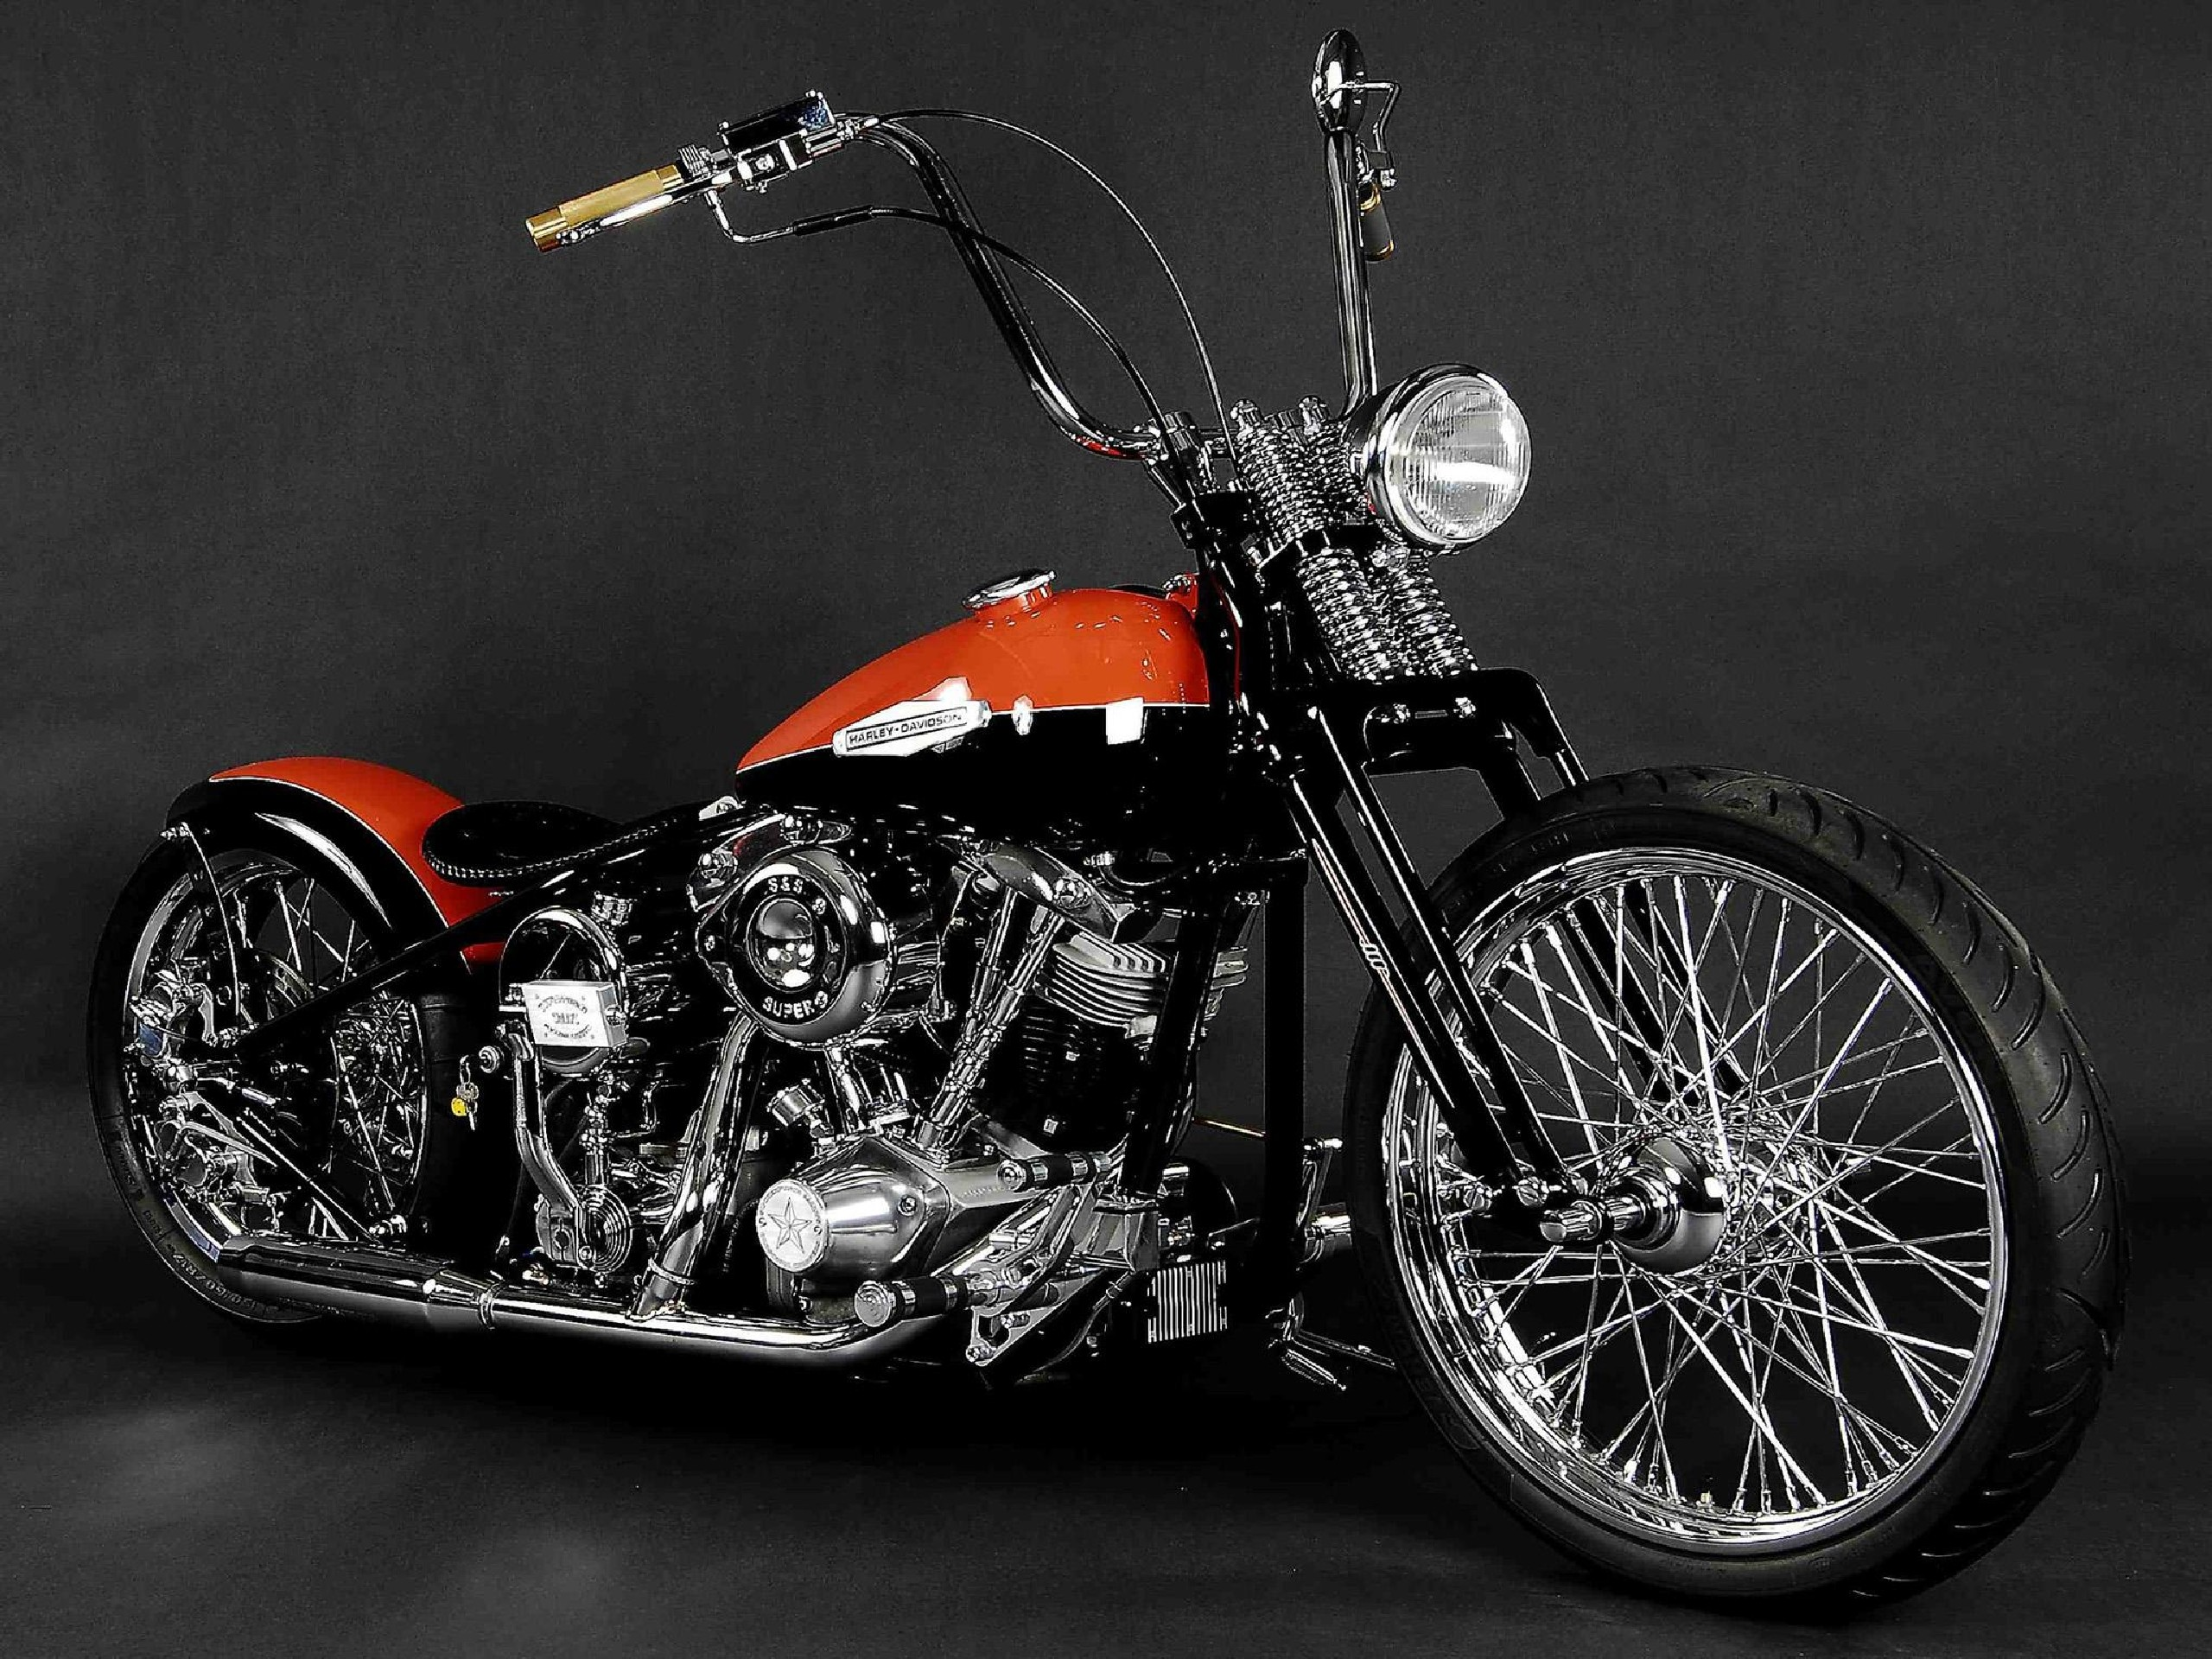 Harley Davidson Wallpaper HD (74+ images)